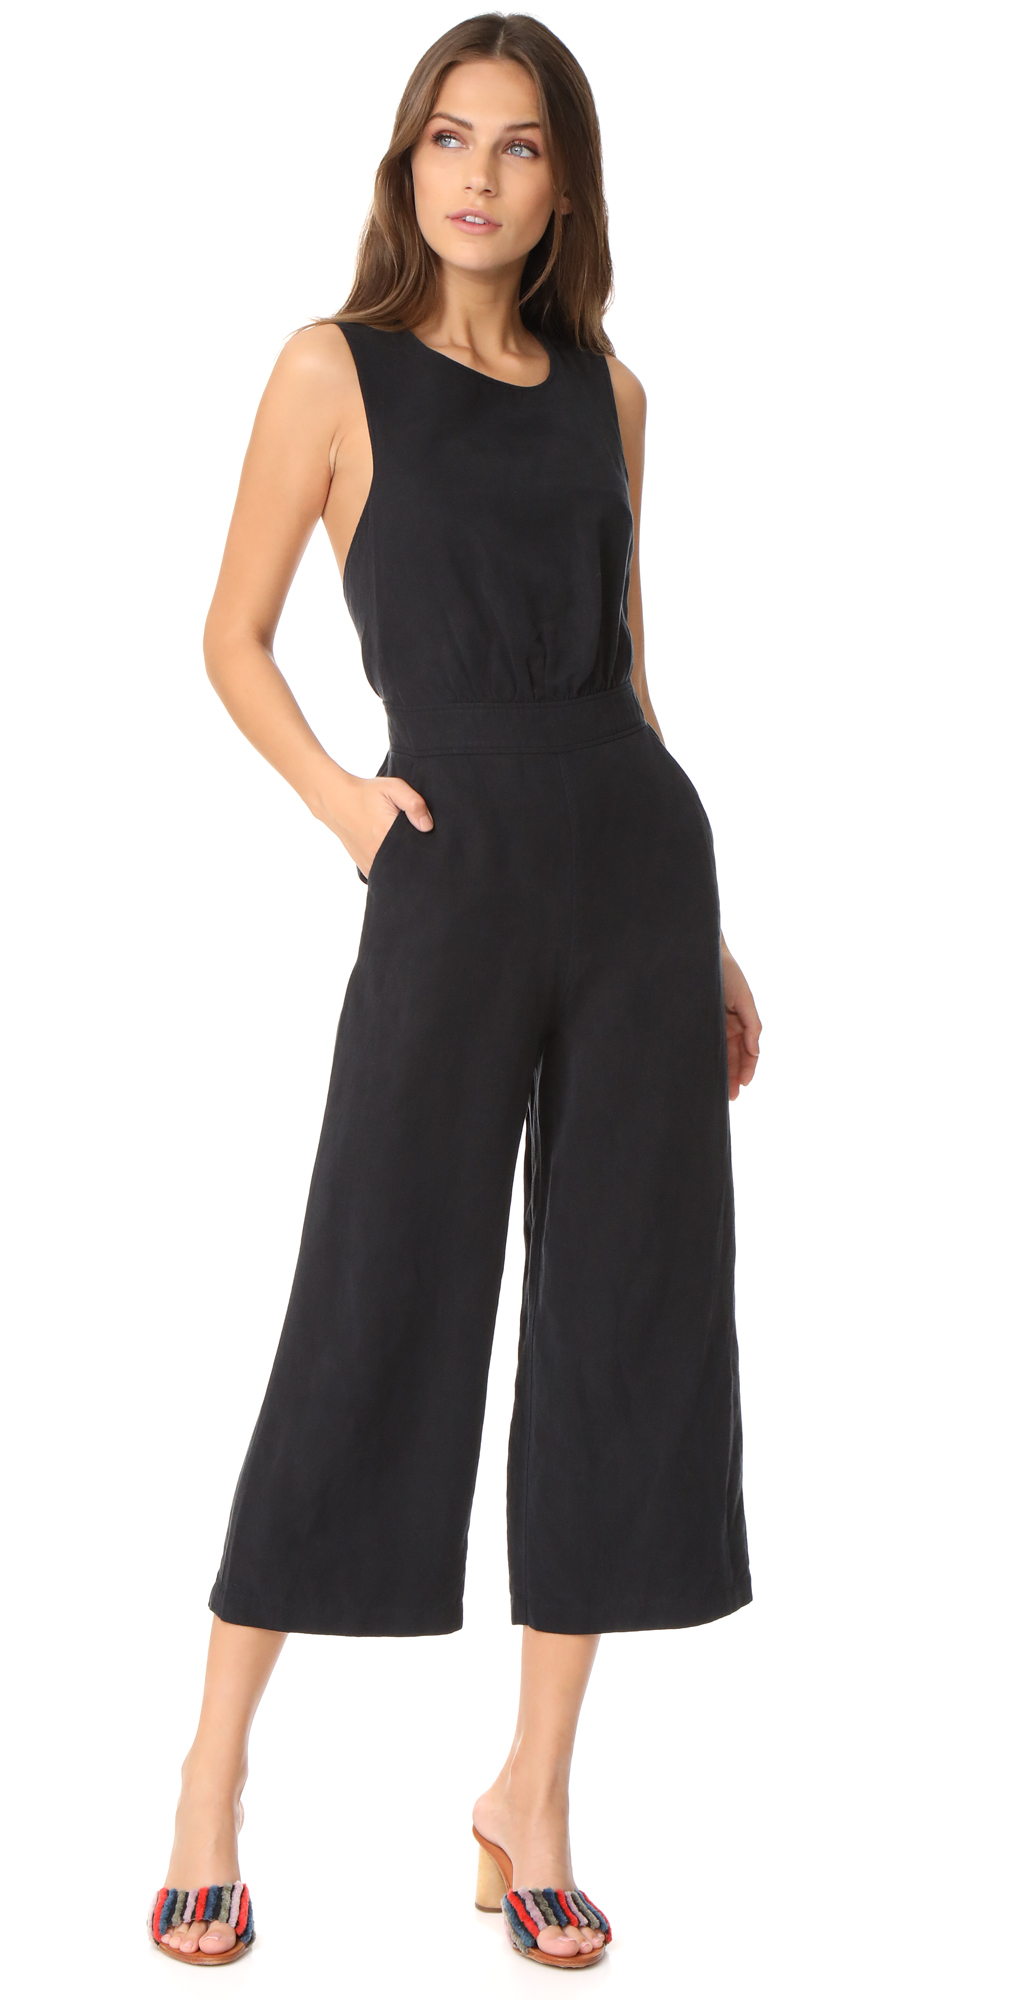 T2 All in One Jumpsuit M.i.h Jeans